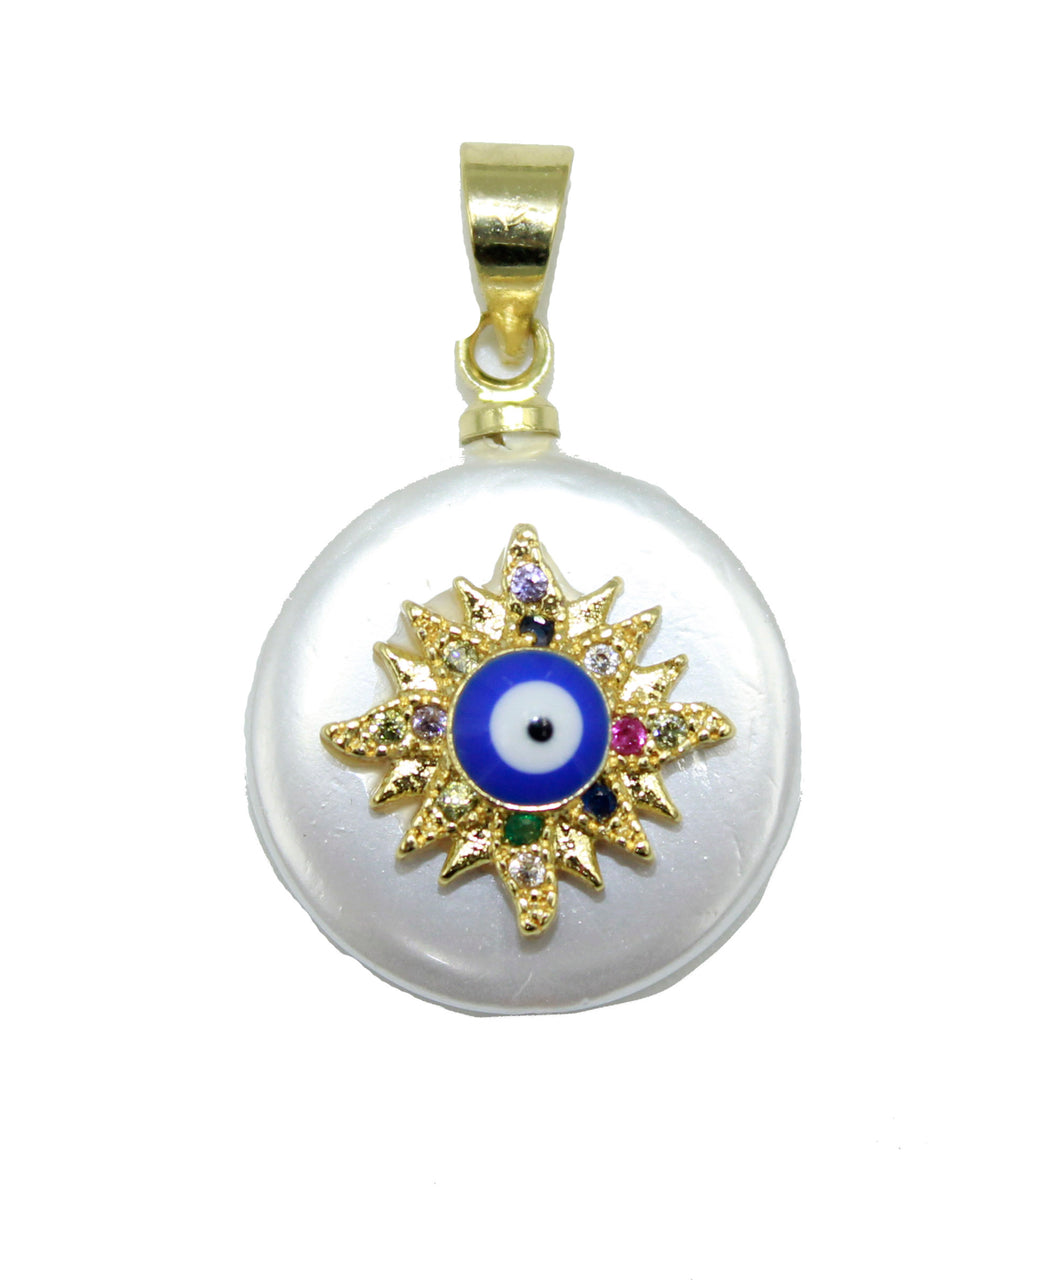 Evil Eye Pearl Necklace 18k Gold Plated - Evil Eye Pendant with 20 inch Chain